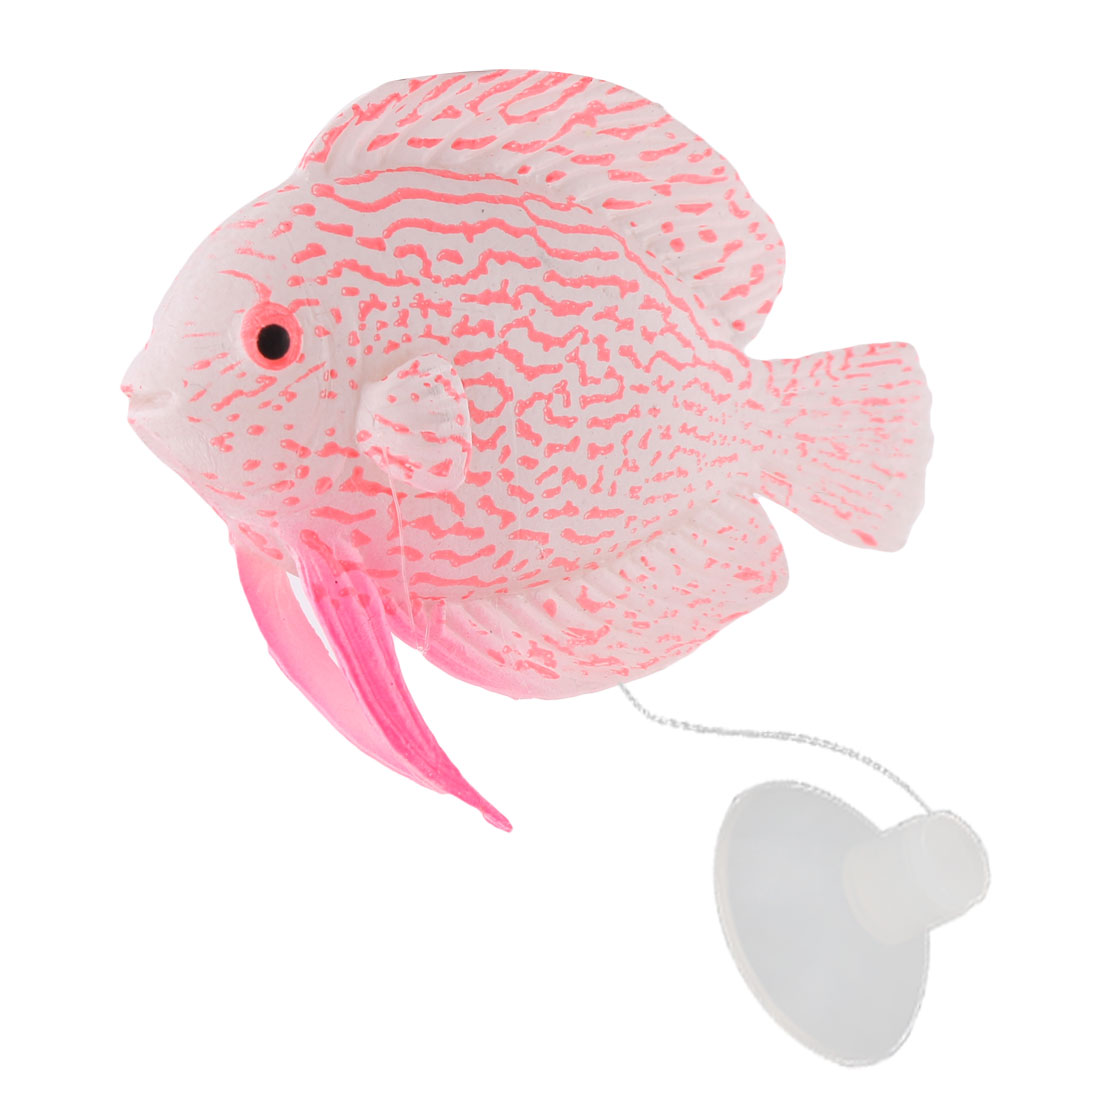 Aquarium Fish Tank Suction Cup Artificial Tropical Fish Decor Decoration Pink White